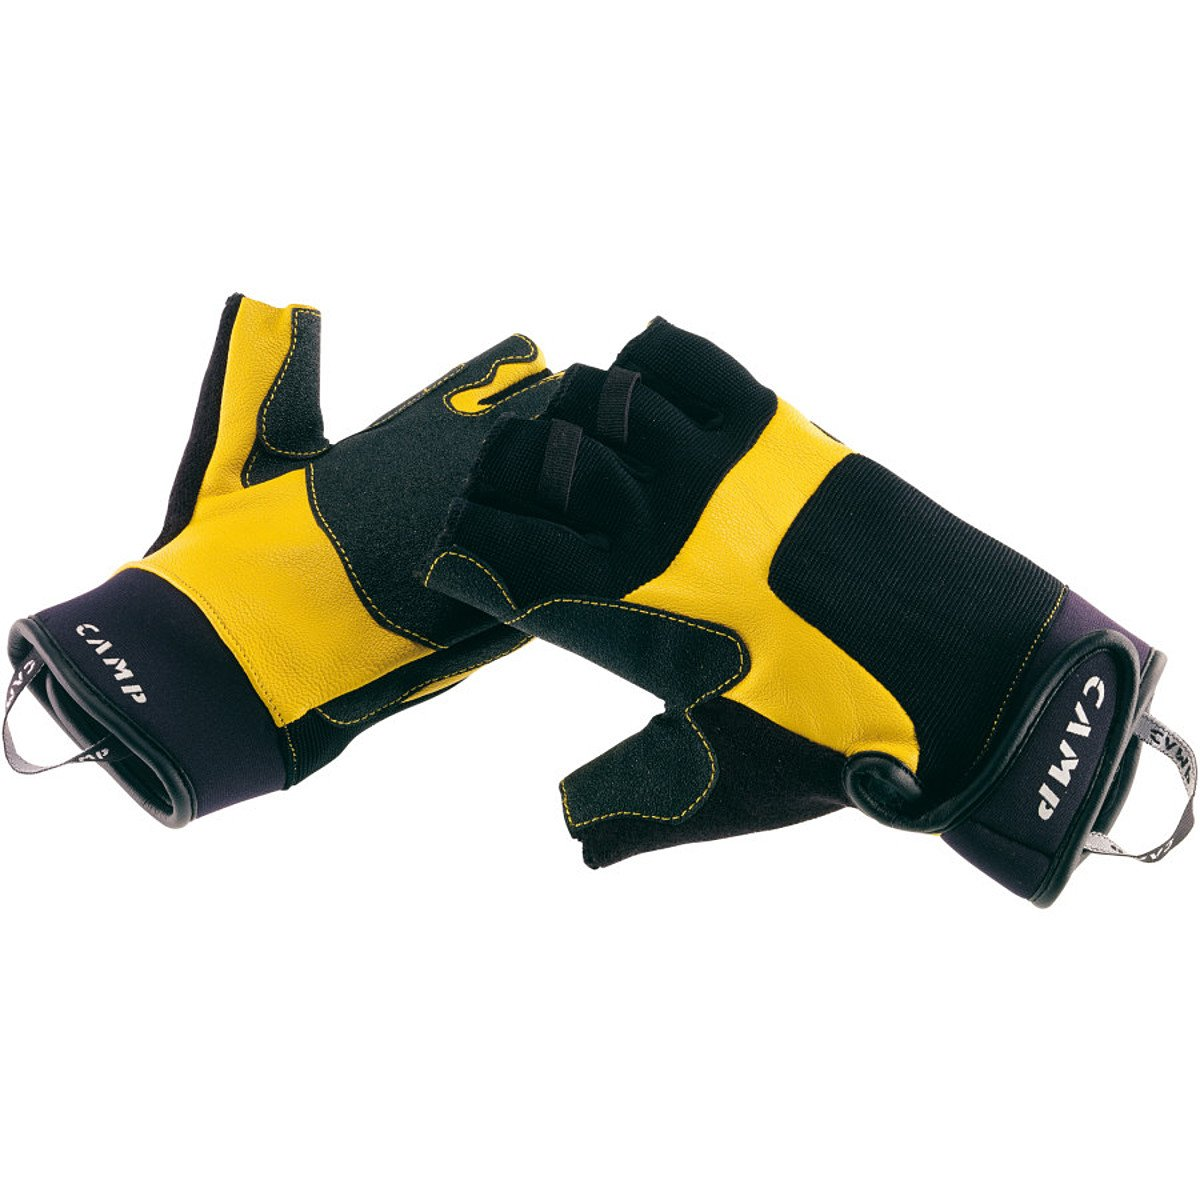 CAMP PRO BELAY GLOVES - S by Camp CAMP USA